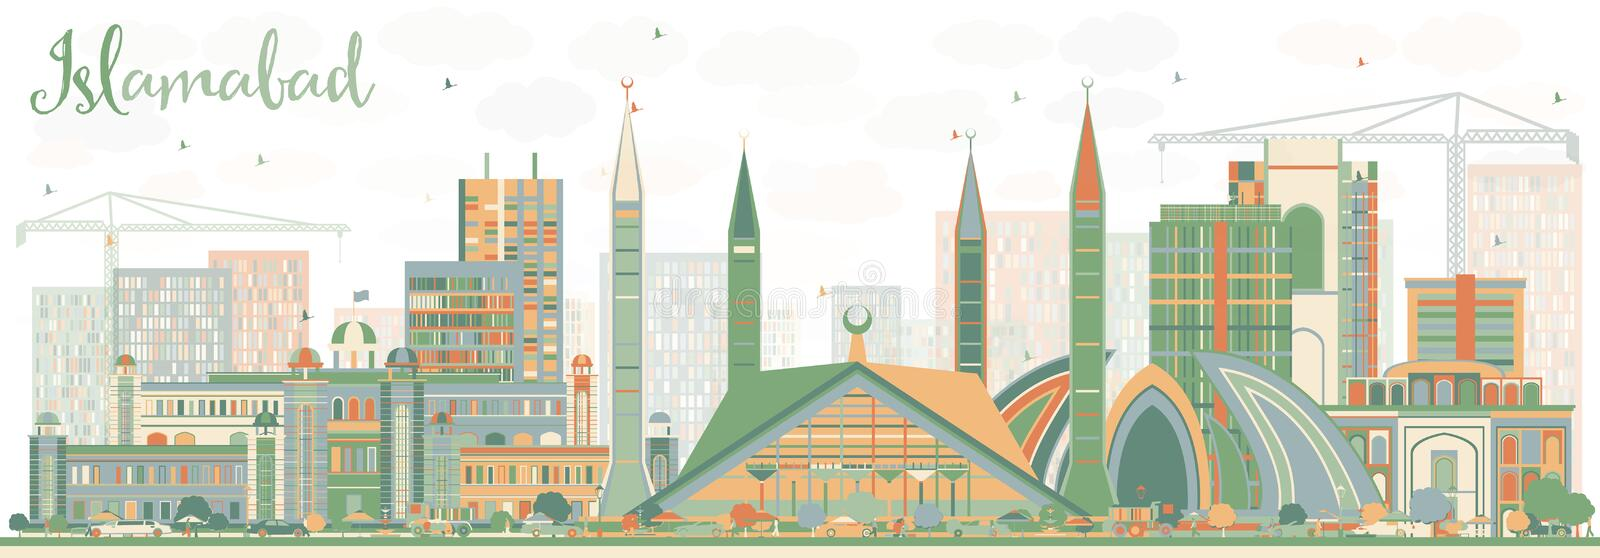 Abstract Islamabad Skyline with Color Buildings. Vector Illustration. Business Travel and Tourism Concept with Historic Architecture. Image for Presentation vector illustration